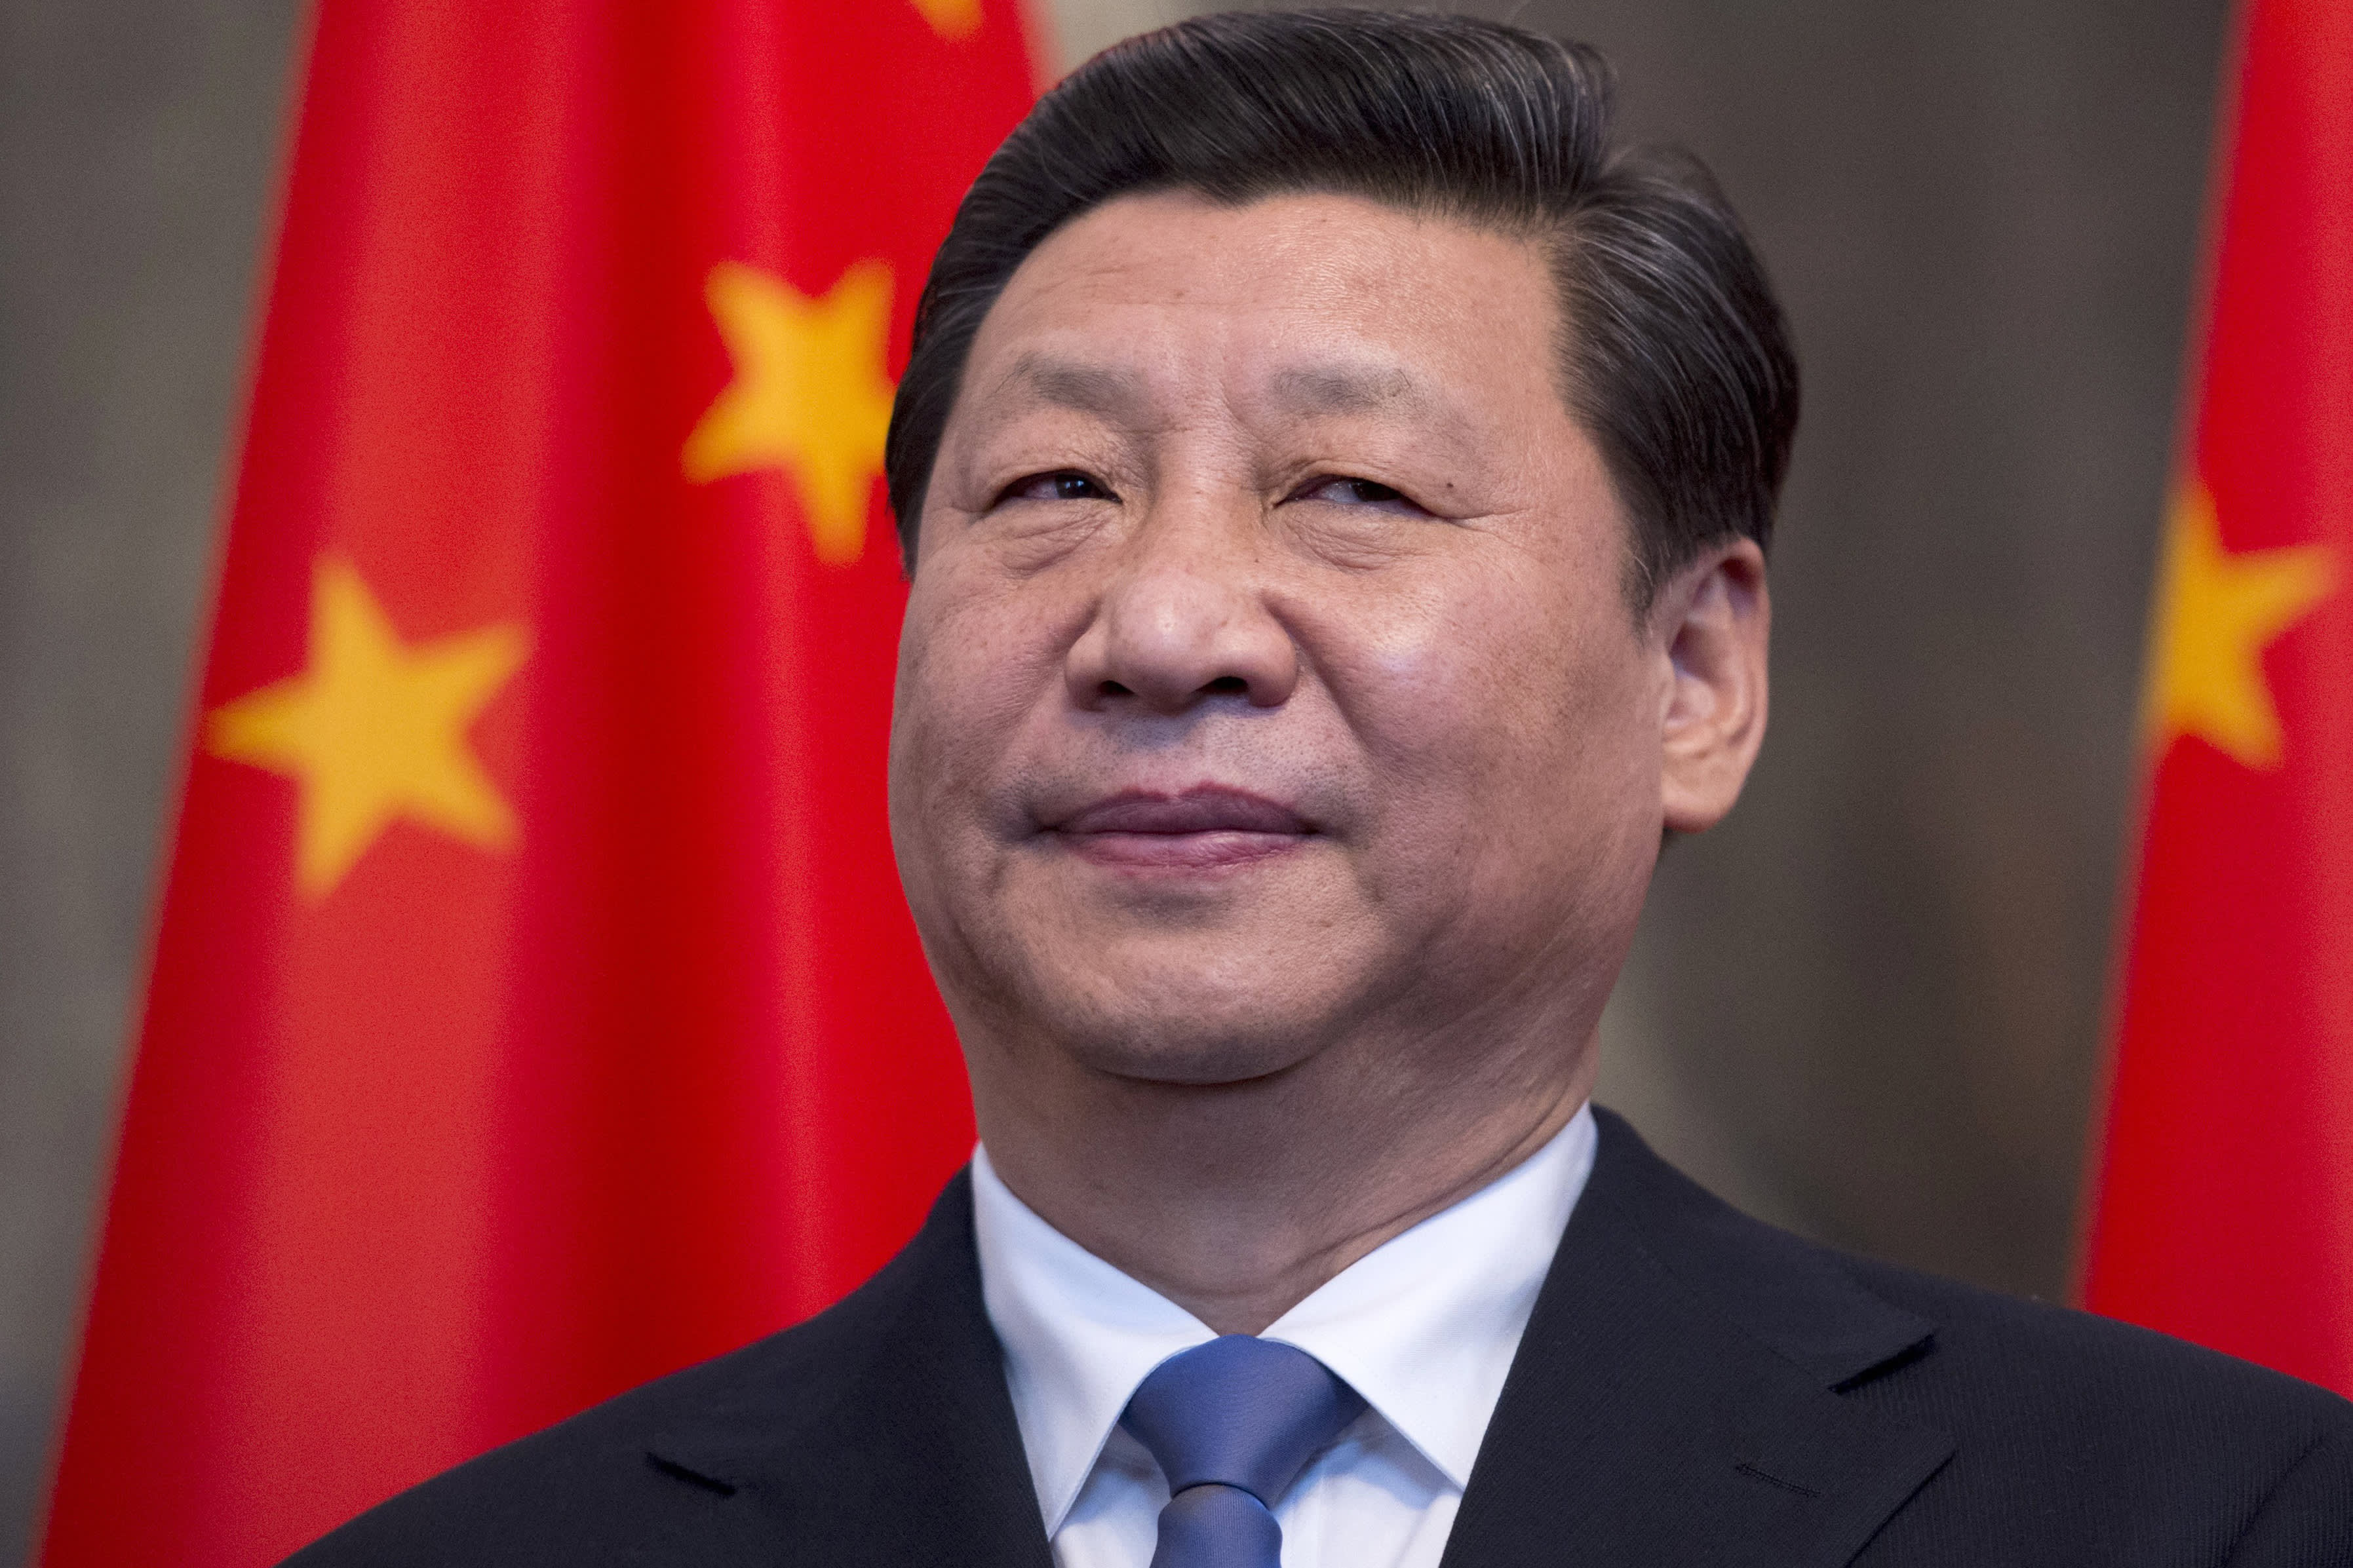 China is indicating it'll never give in to US demands to change its state-run economy